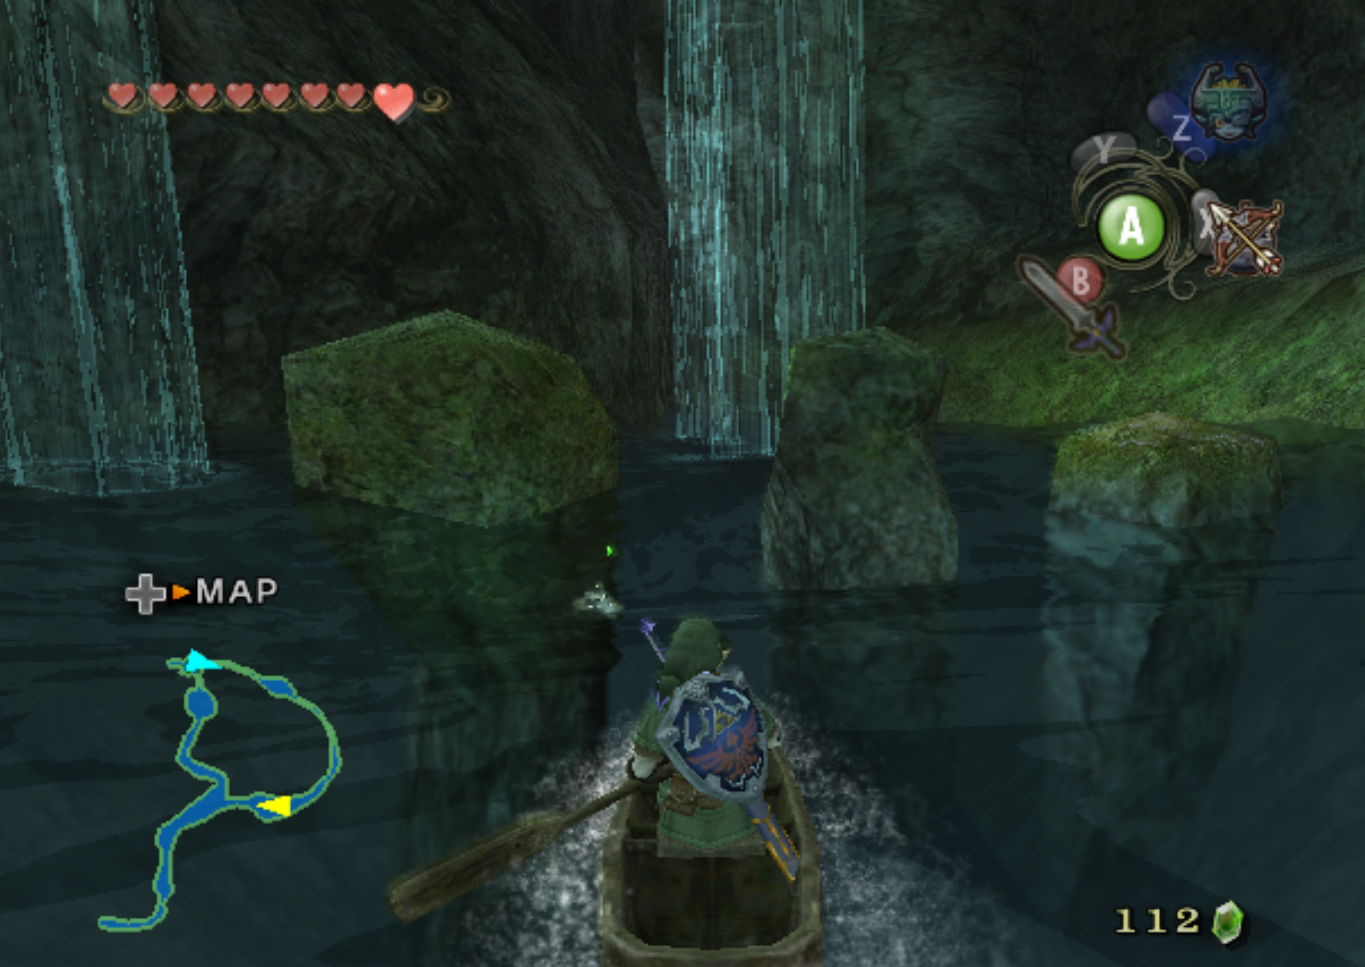 Zoras River Following the Zora for Bomb Bag